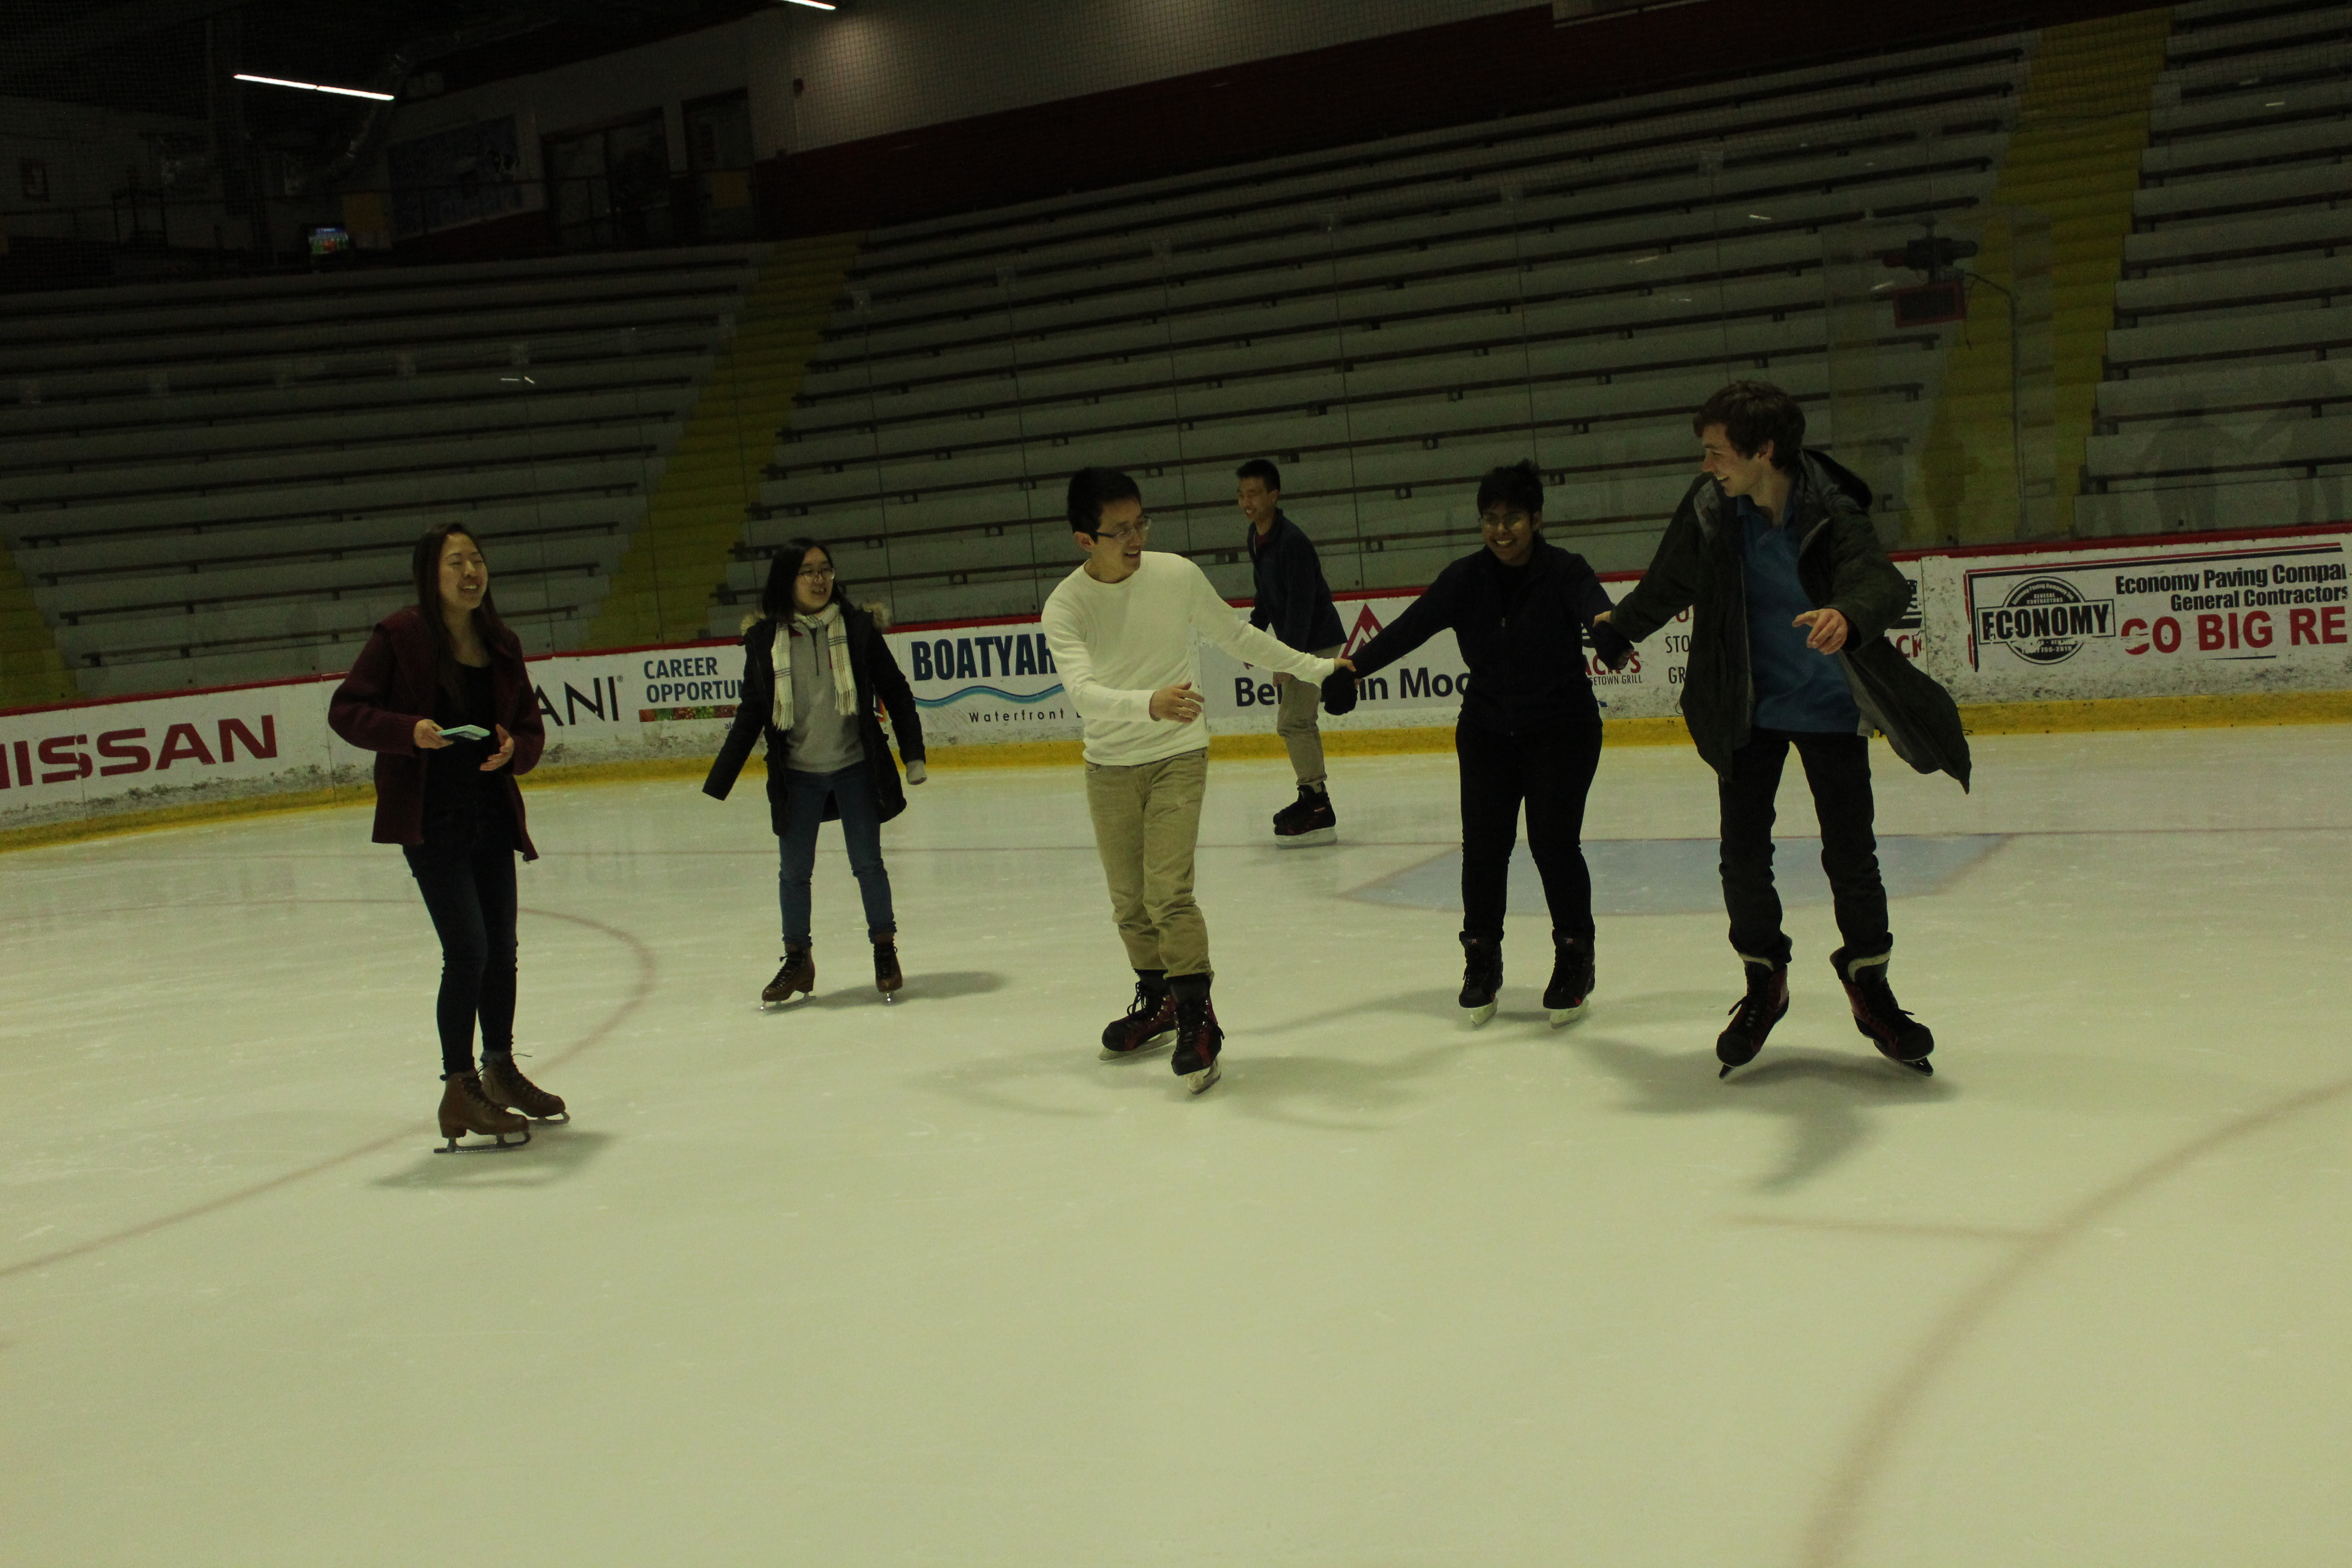 Whole group on skates